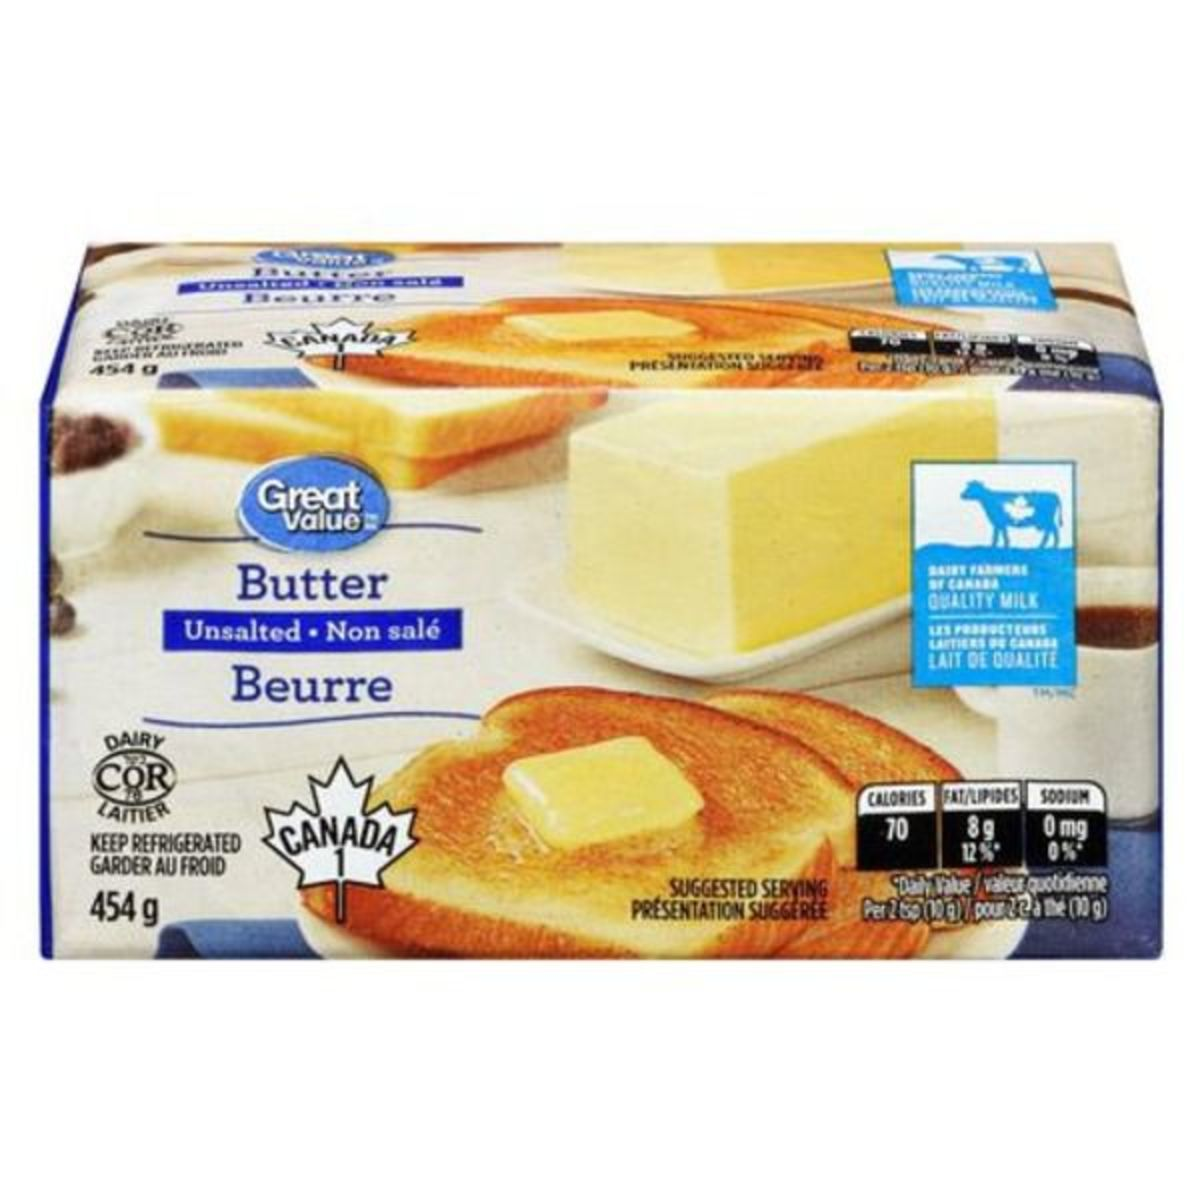 Great Value Unsalted Butter 454g